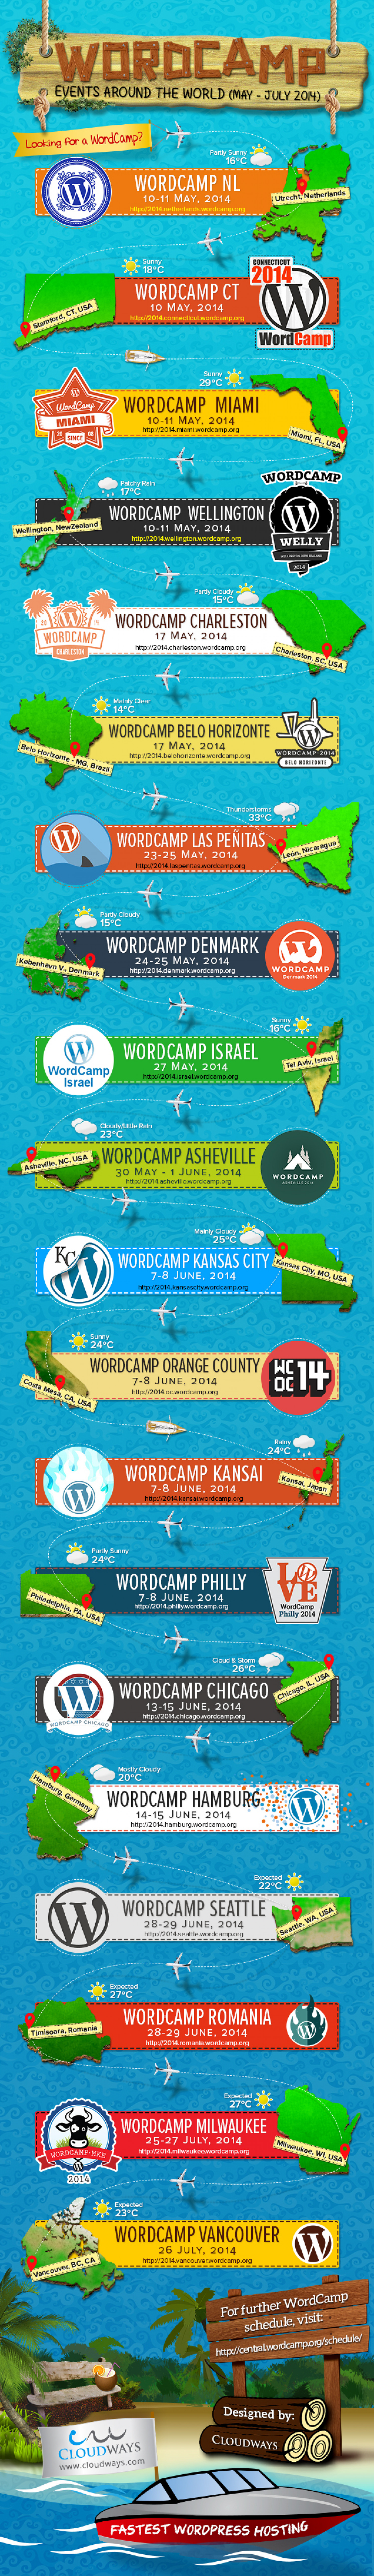 Wordcamp Events Around the World (May - July 2014) Infographic